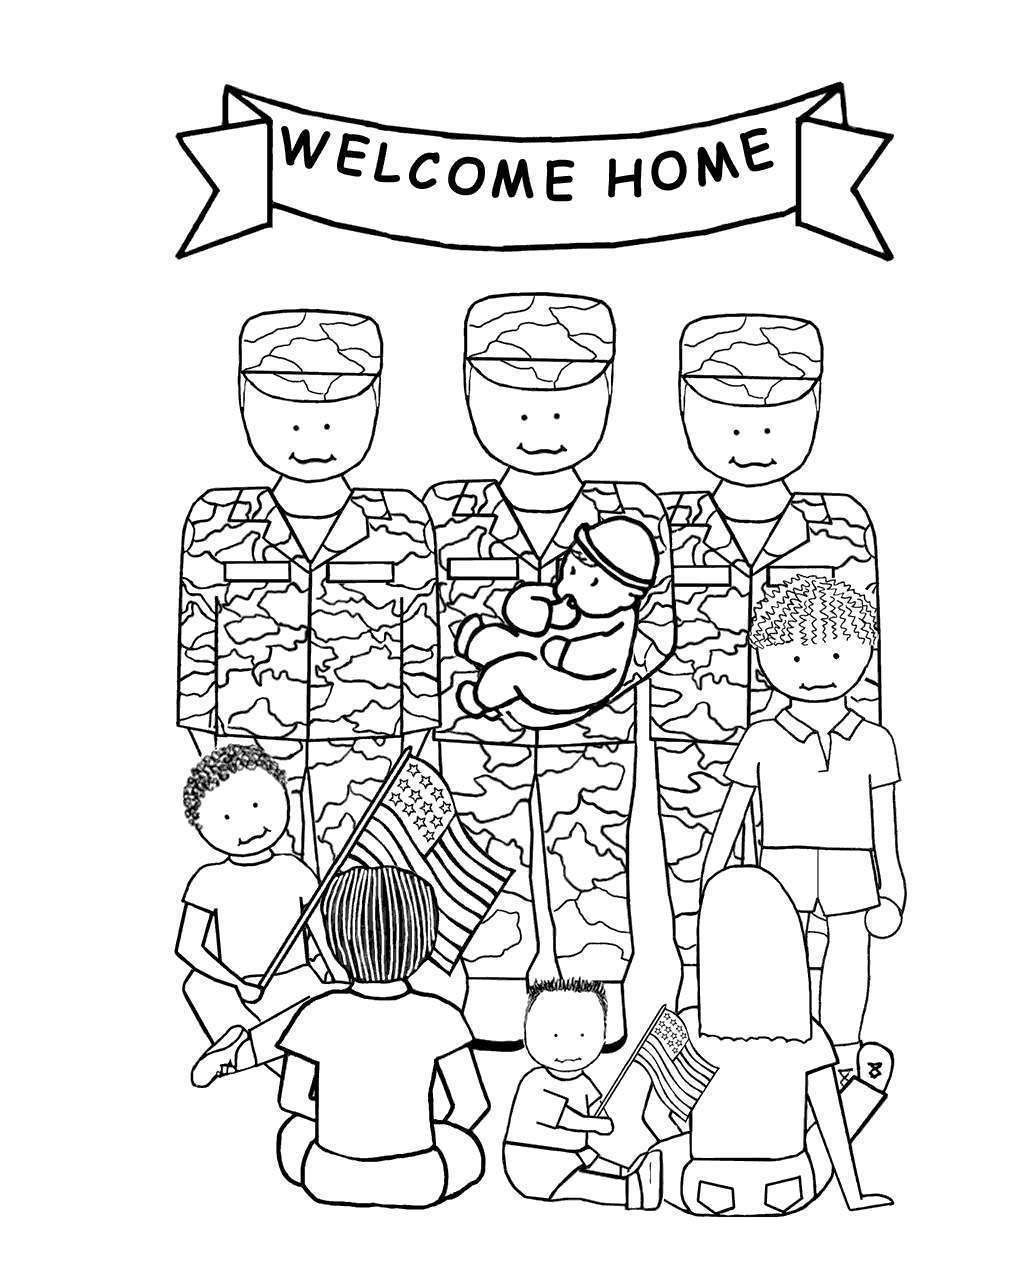 Free Thank You For Your Service Coloring Pages Thank you Soldier printable